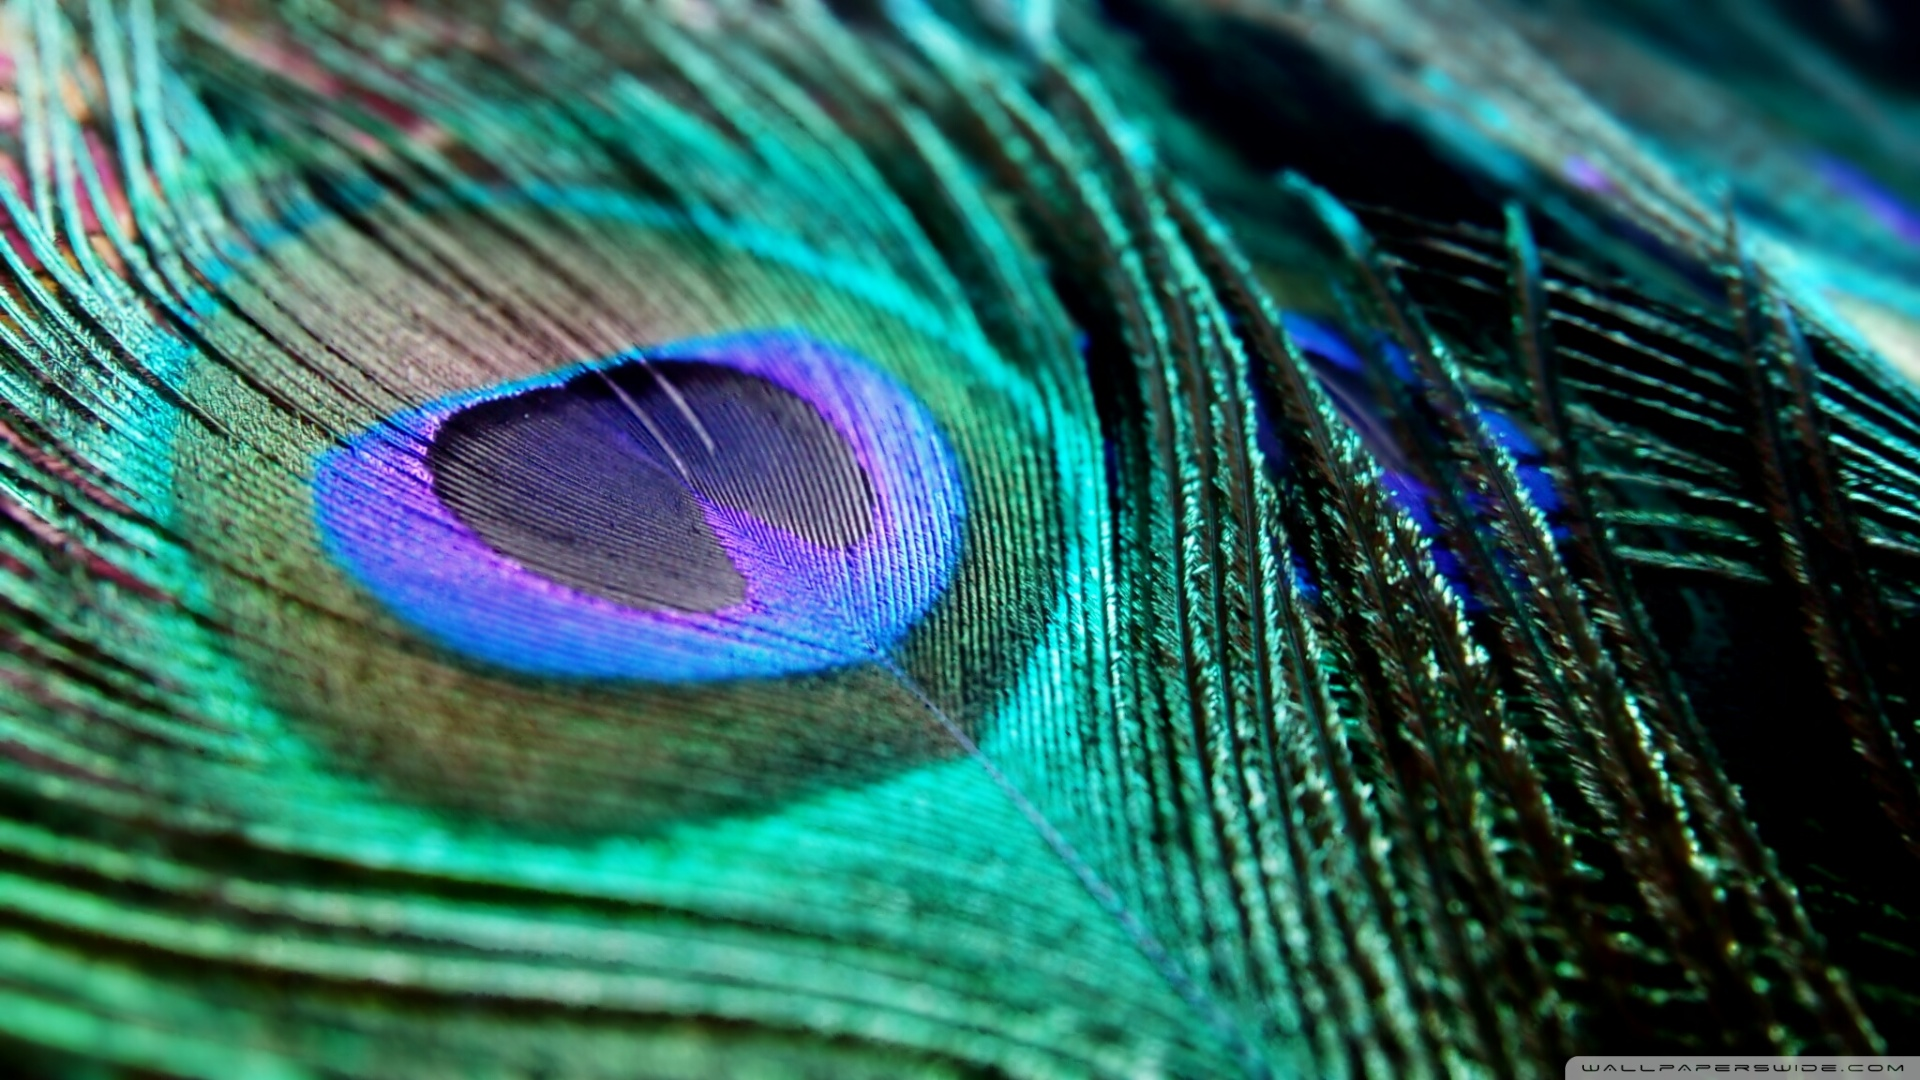 peacock feather wallpaper for desktop